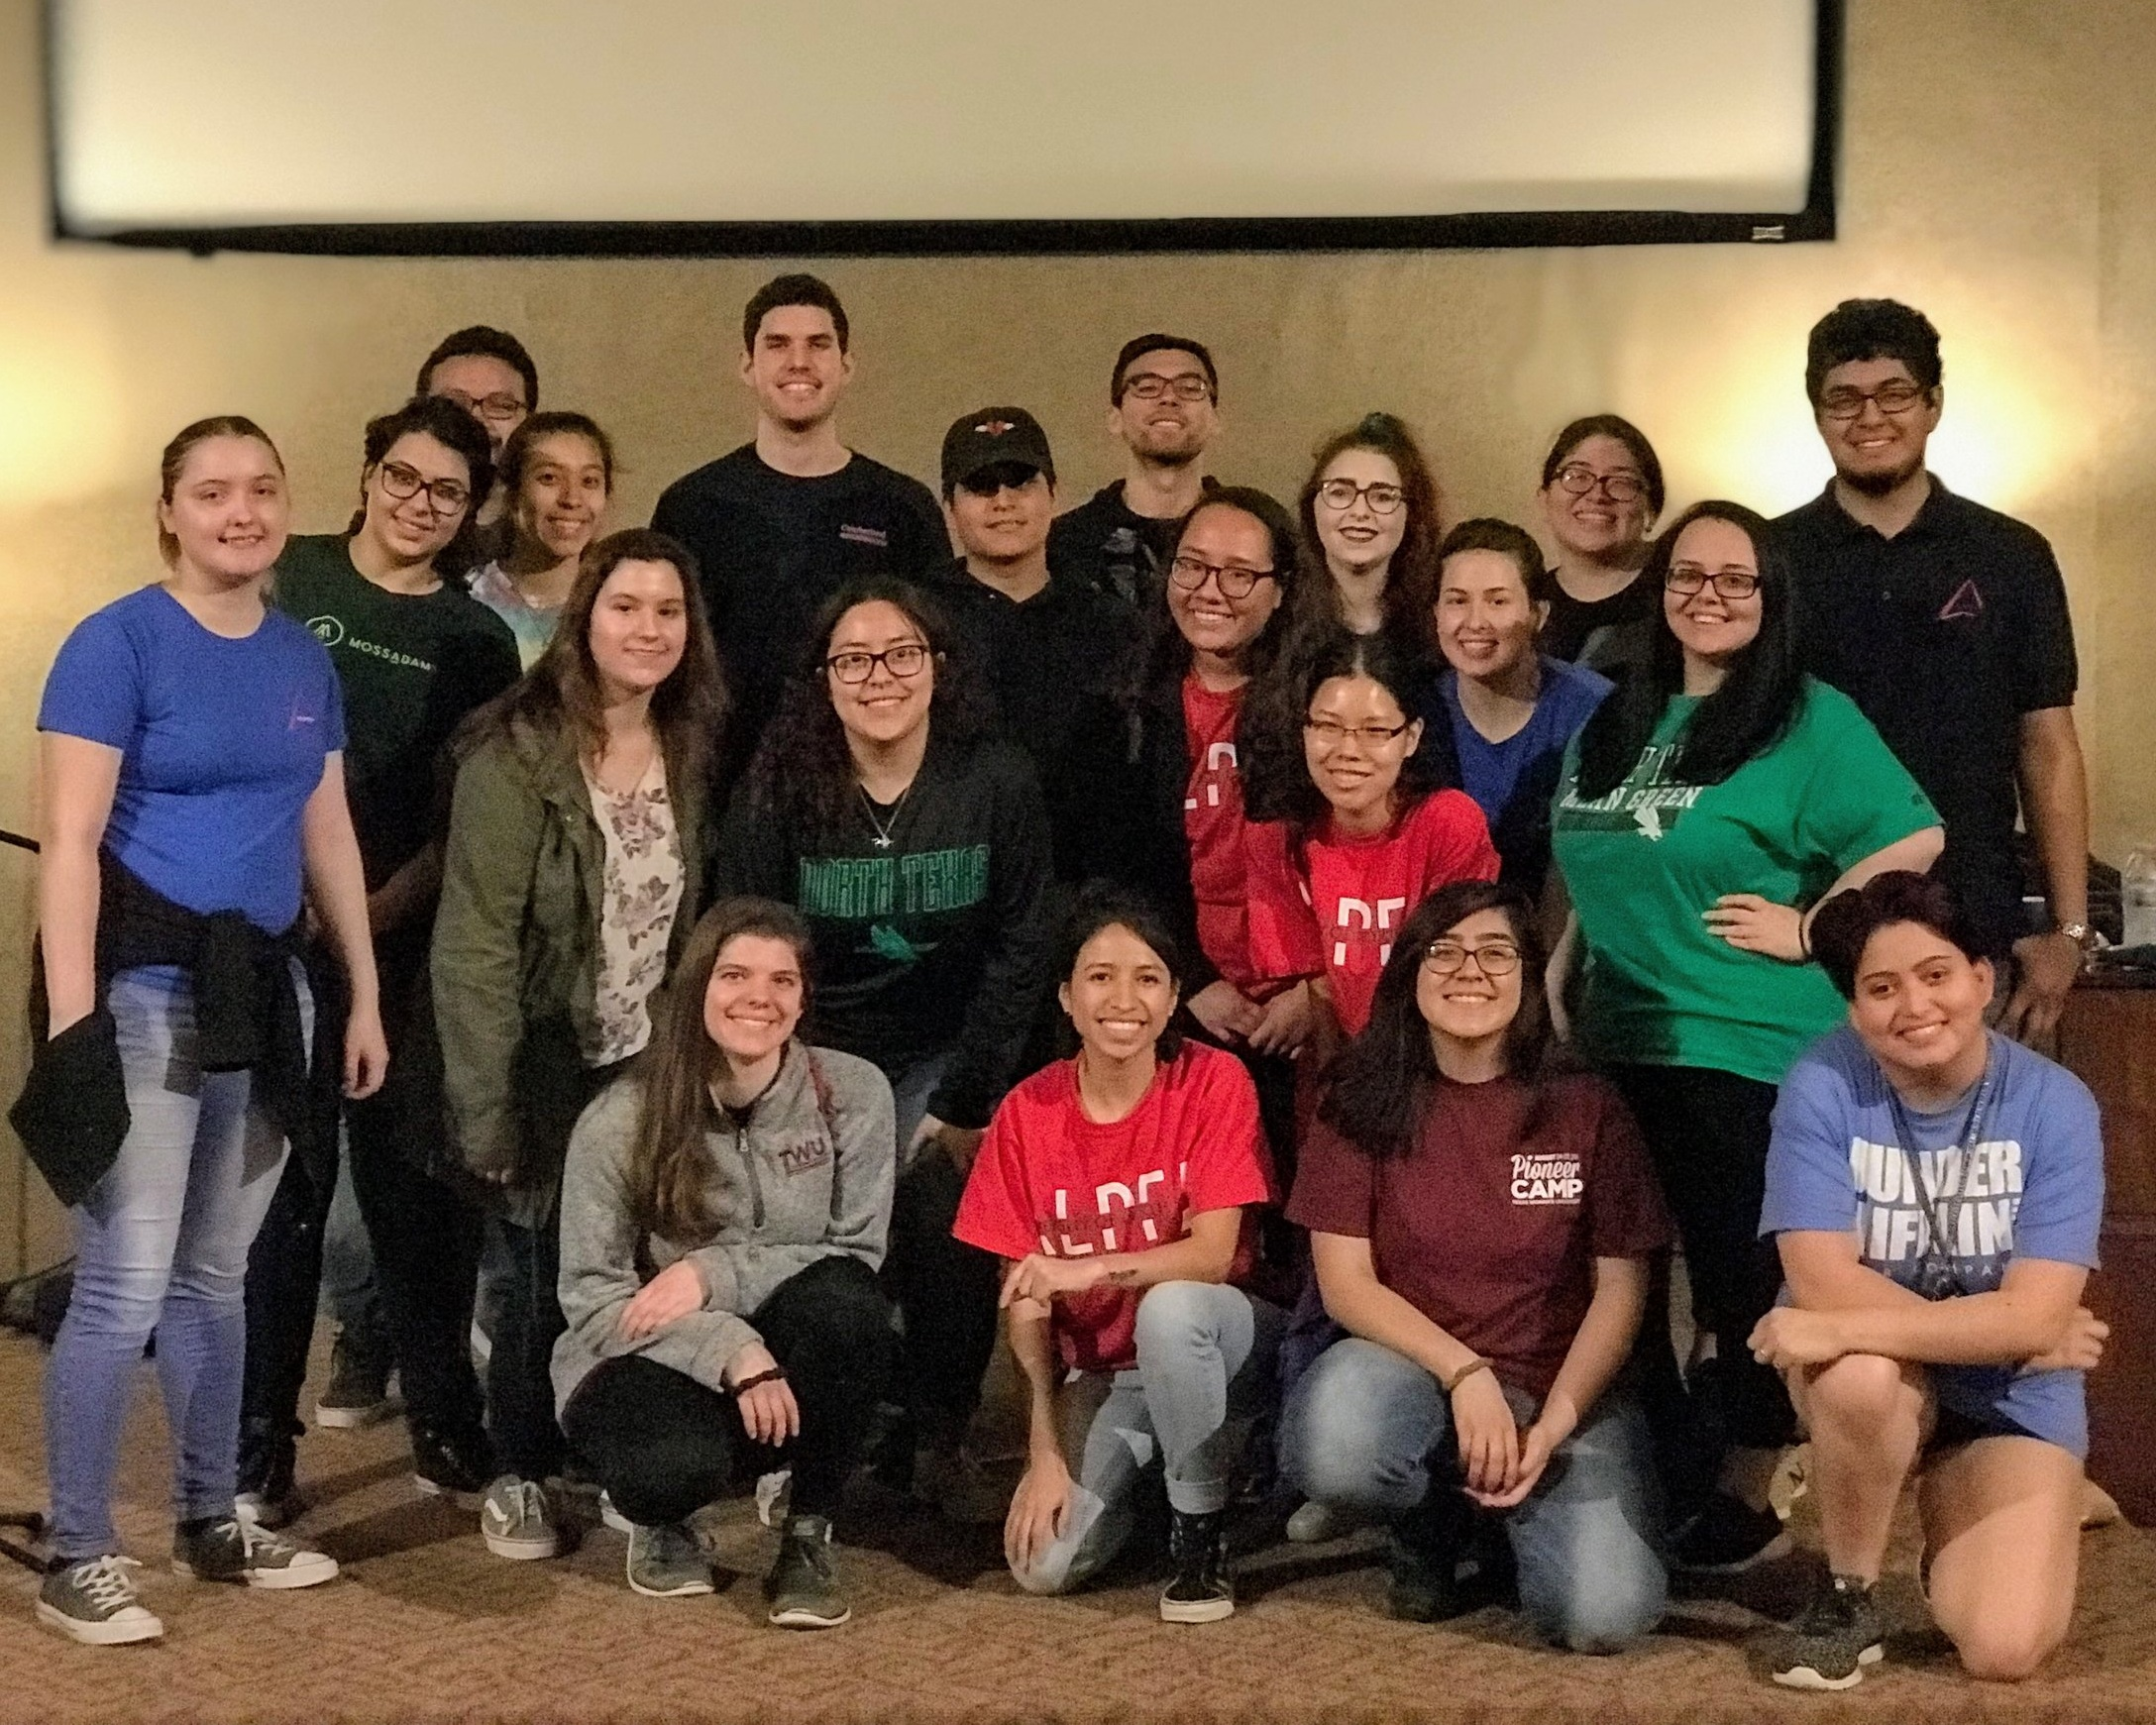 Easter Celebration 2019! - We were excited to have volunteers from UNT ALPHAS, TWU Helping Hands and Celebrate Recovery to help us with our annual Easter egg hunt as well as serve a delicious brunch to our youth and families. Thank you to everyone that graciously donated to our event!